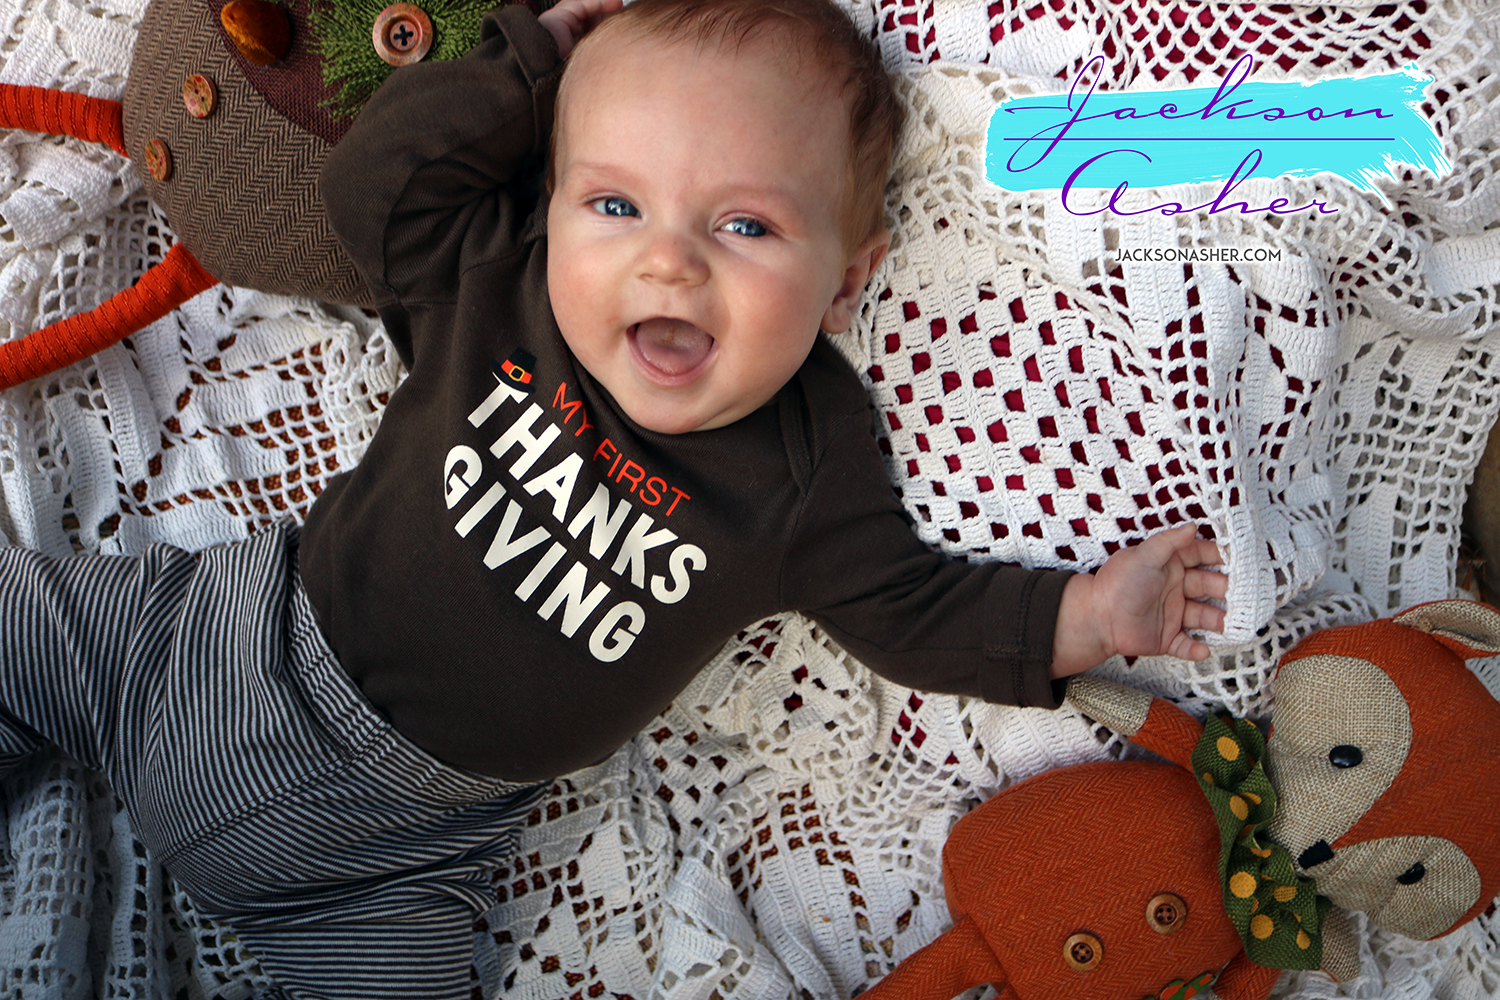 Jackson Asher Thanksgiving - 12.jpg